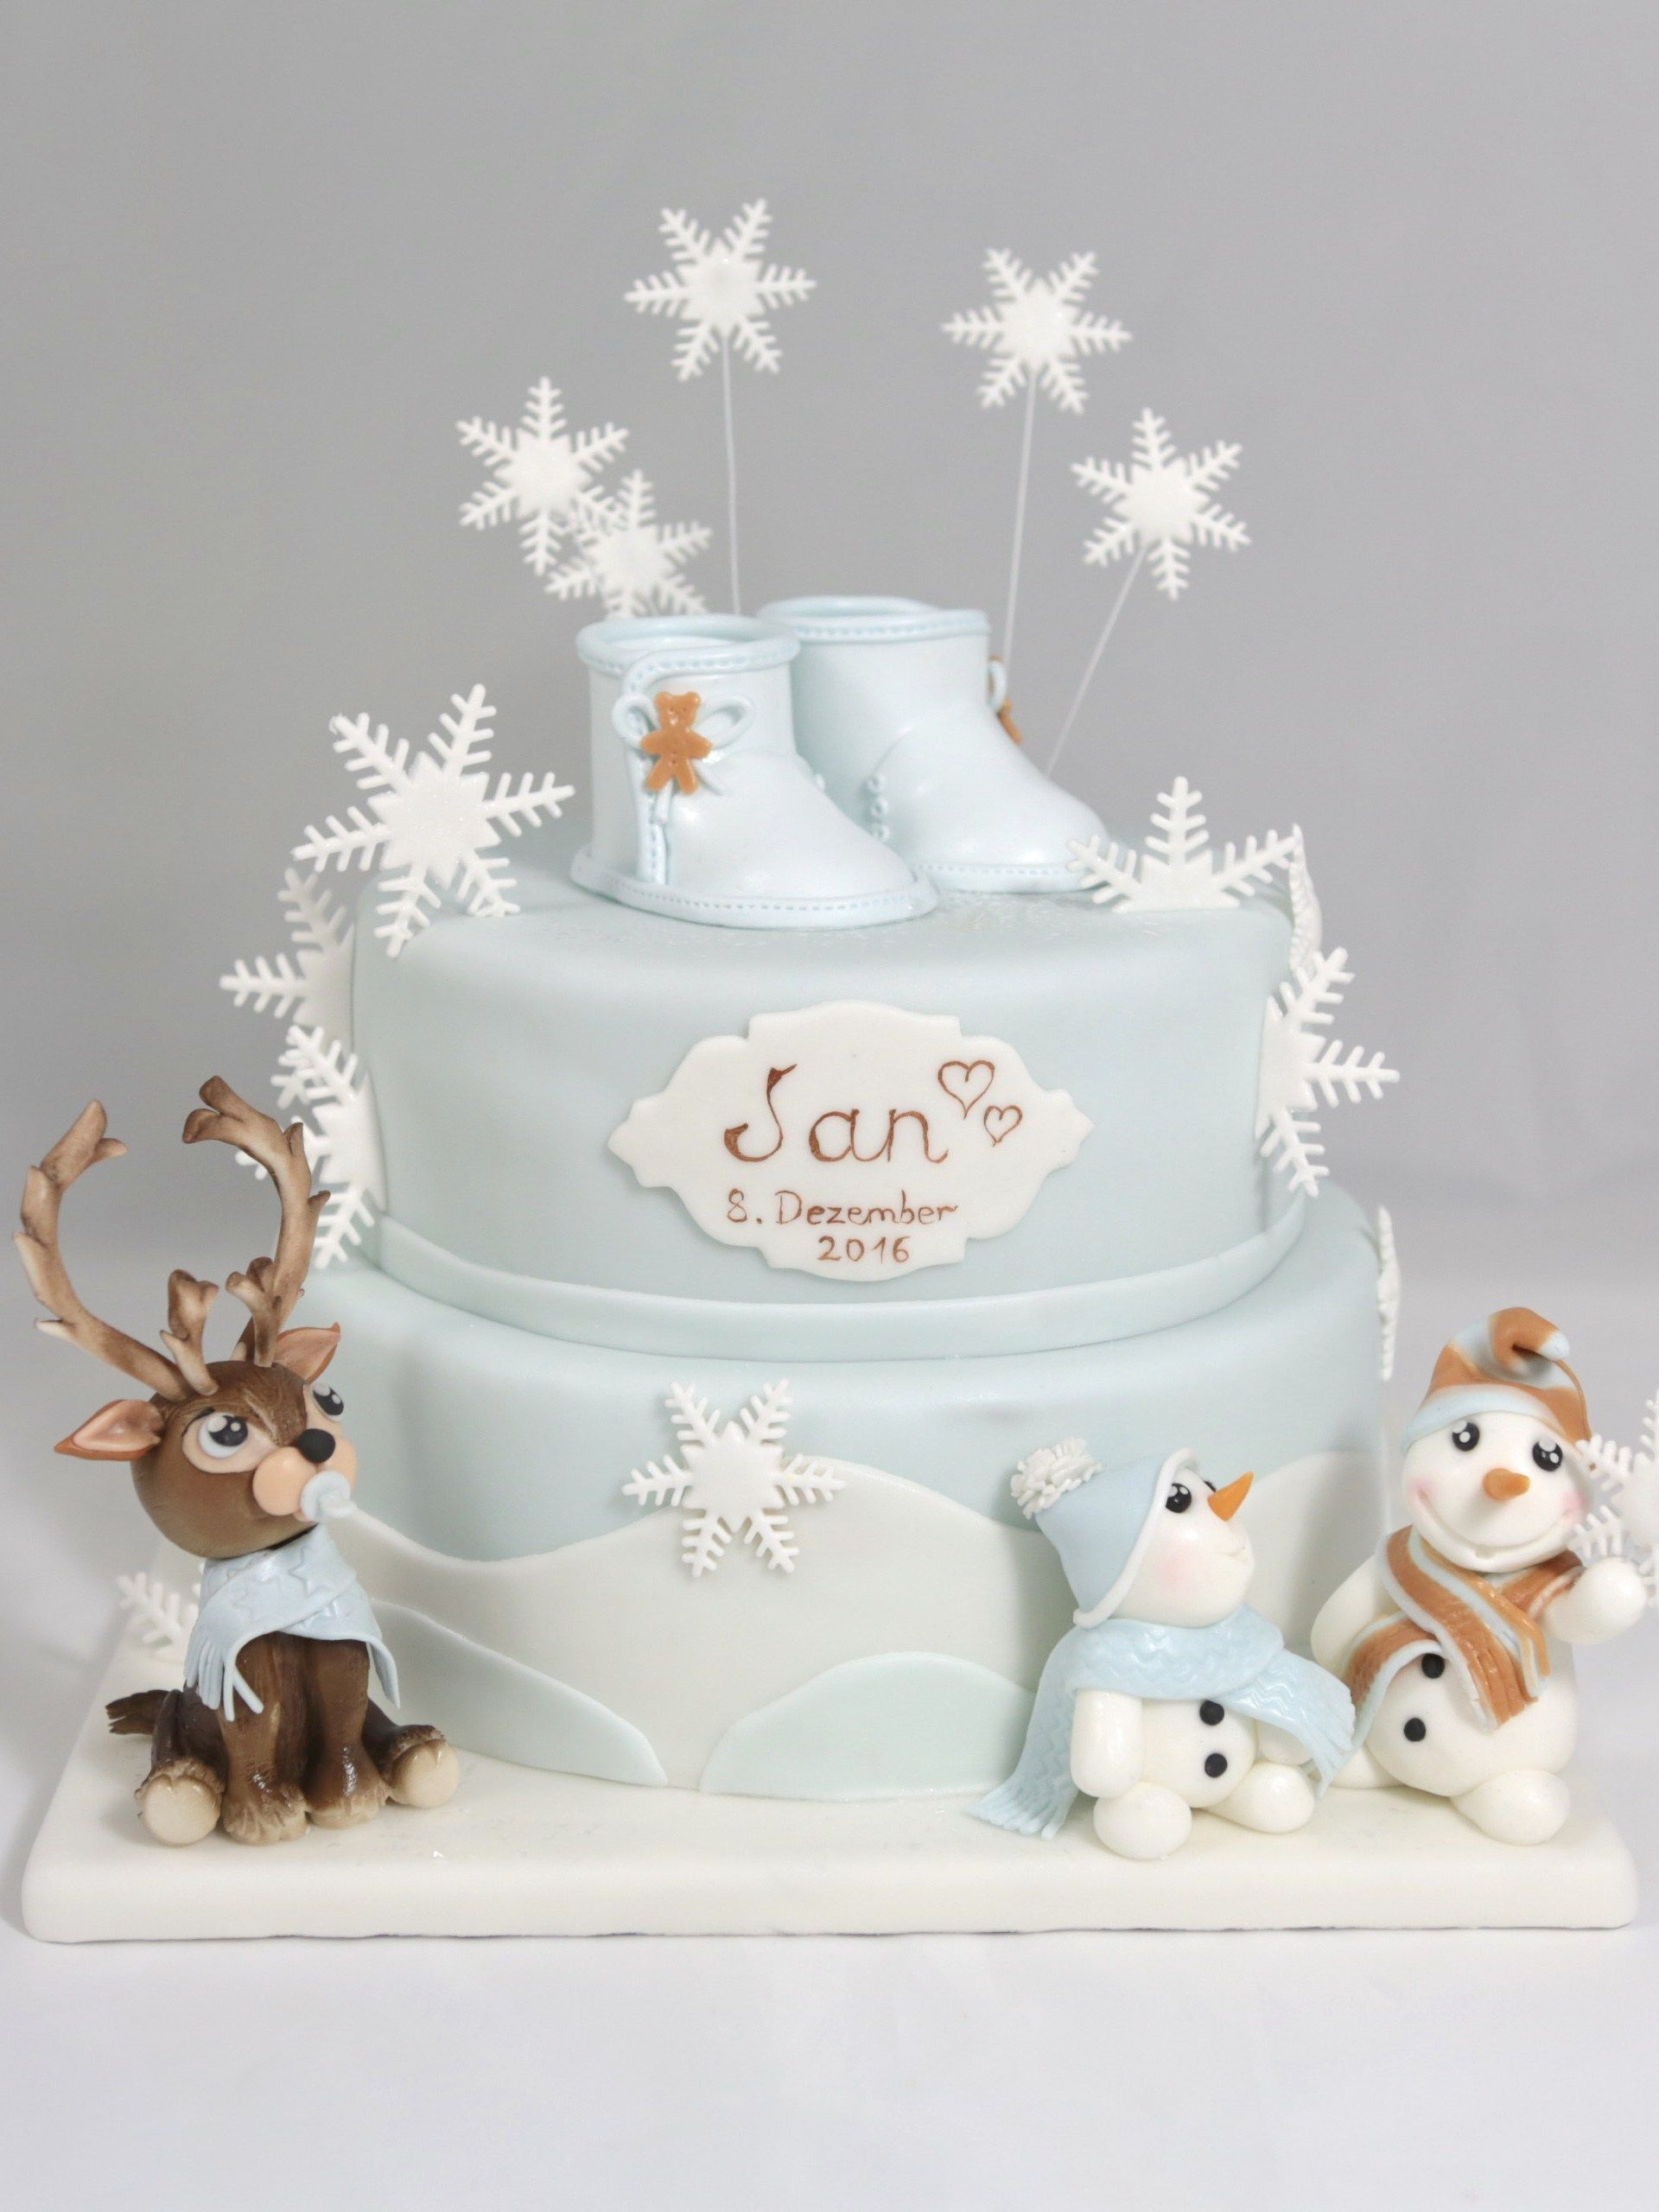 taufe baptism cake torte winter schneeflocken snowflakes. Black Bedroom Furniture Sets. Home Design Ideas